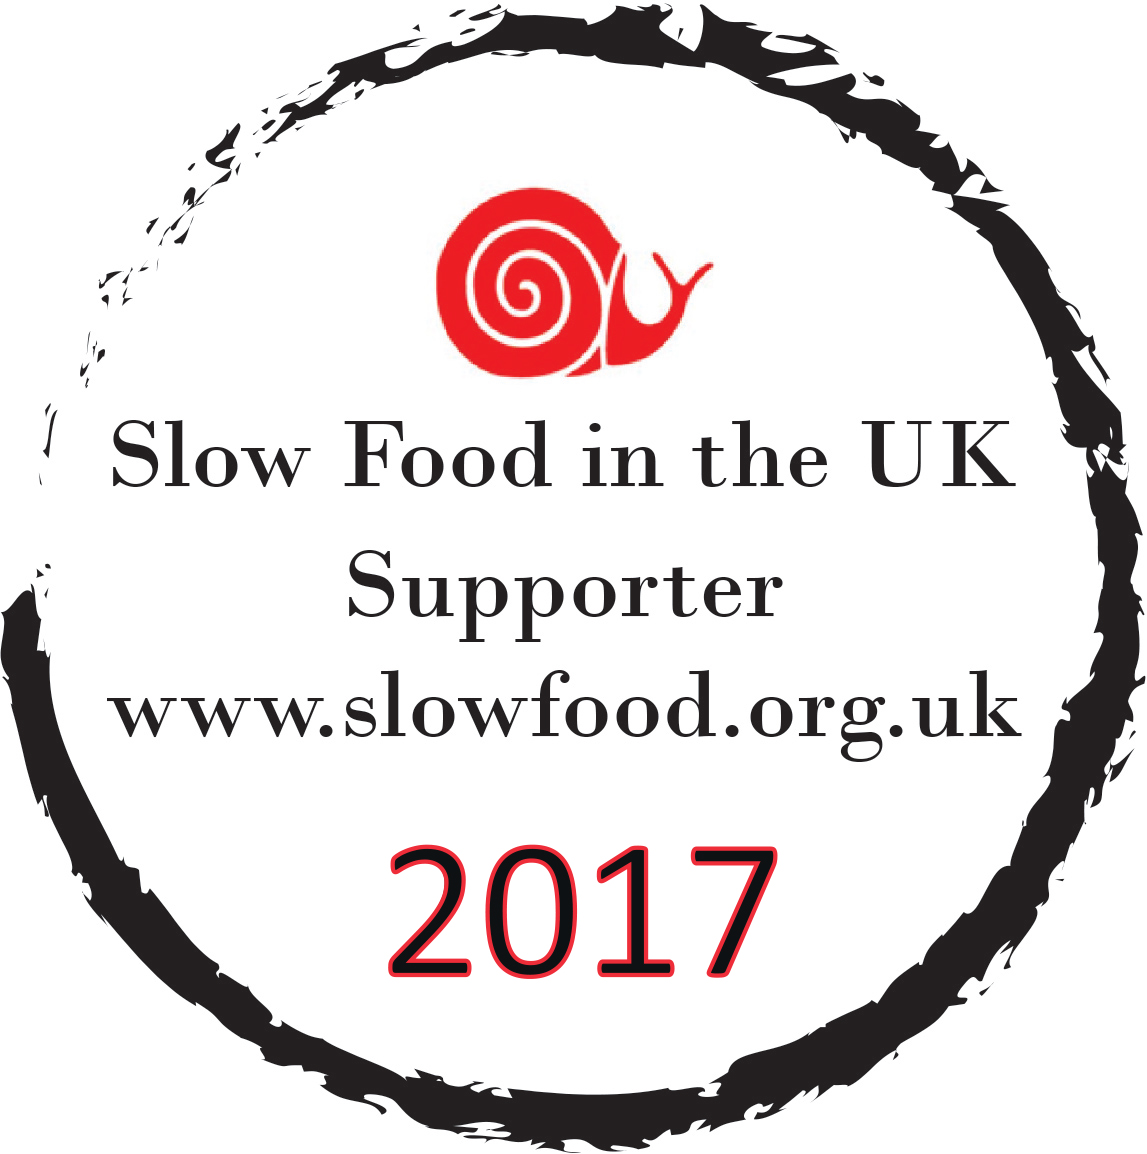 Member of Slow Food UK supporters